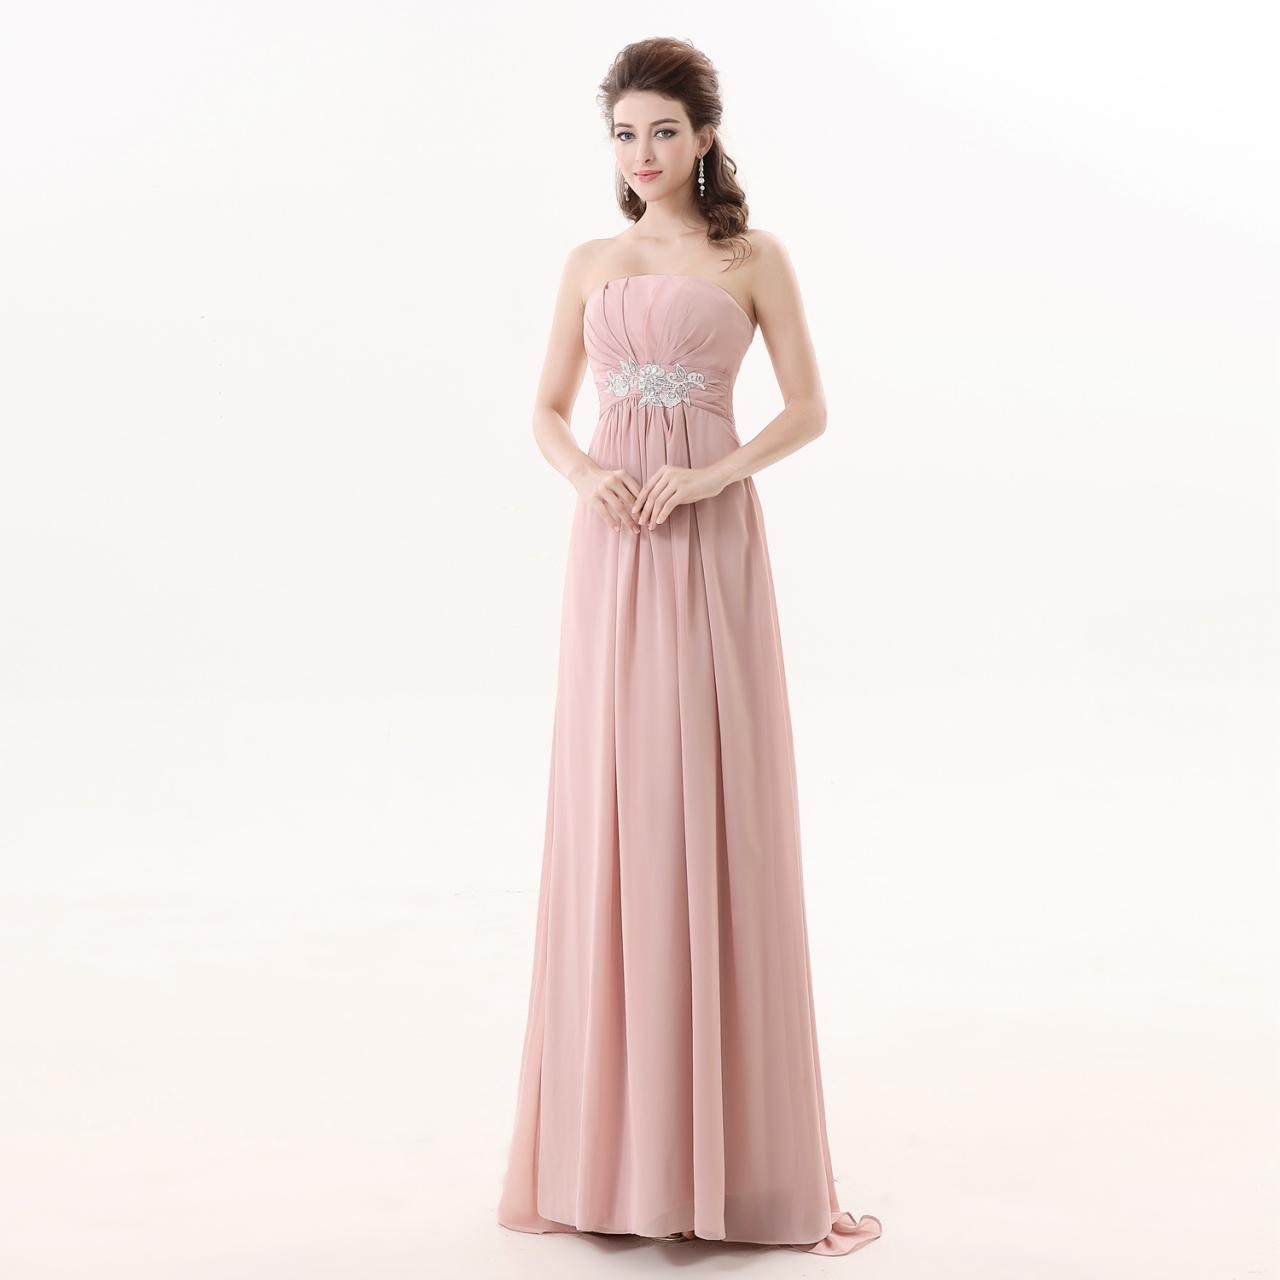 Pink Chiffon Bridesmaid Dress,Floor Length A Line Strapless Bridesmaid Dresses